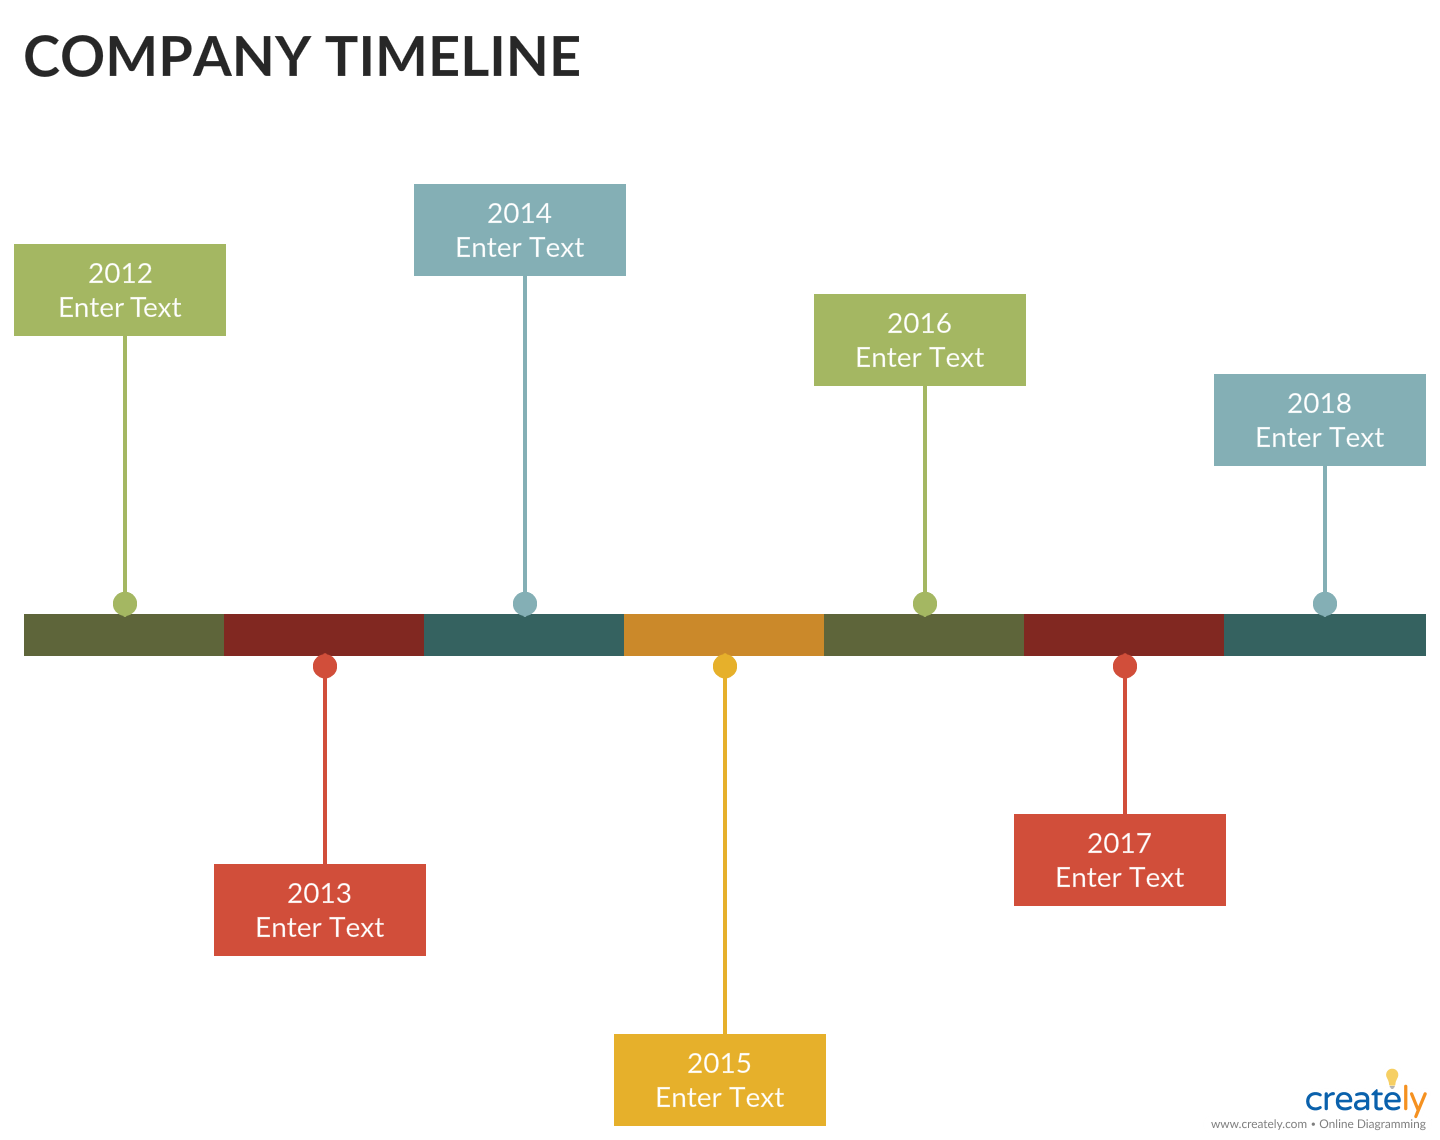 hight resolution of company timeline template is one of the best ways to create your creative company and business history and the timeframe of your company progress or